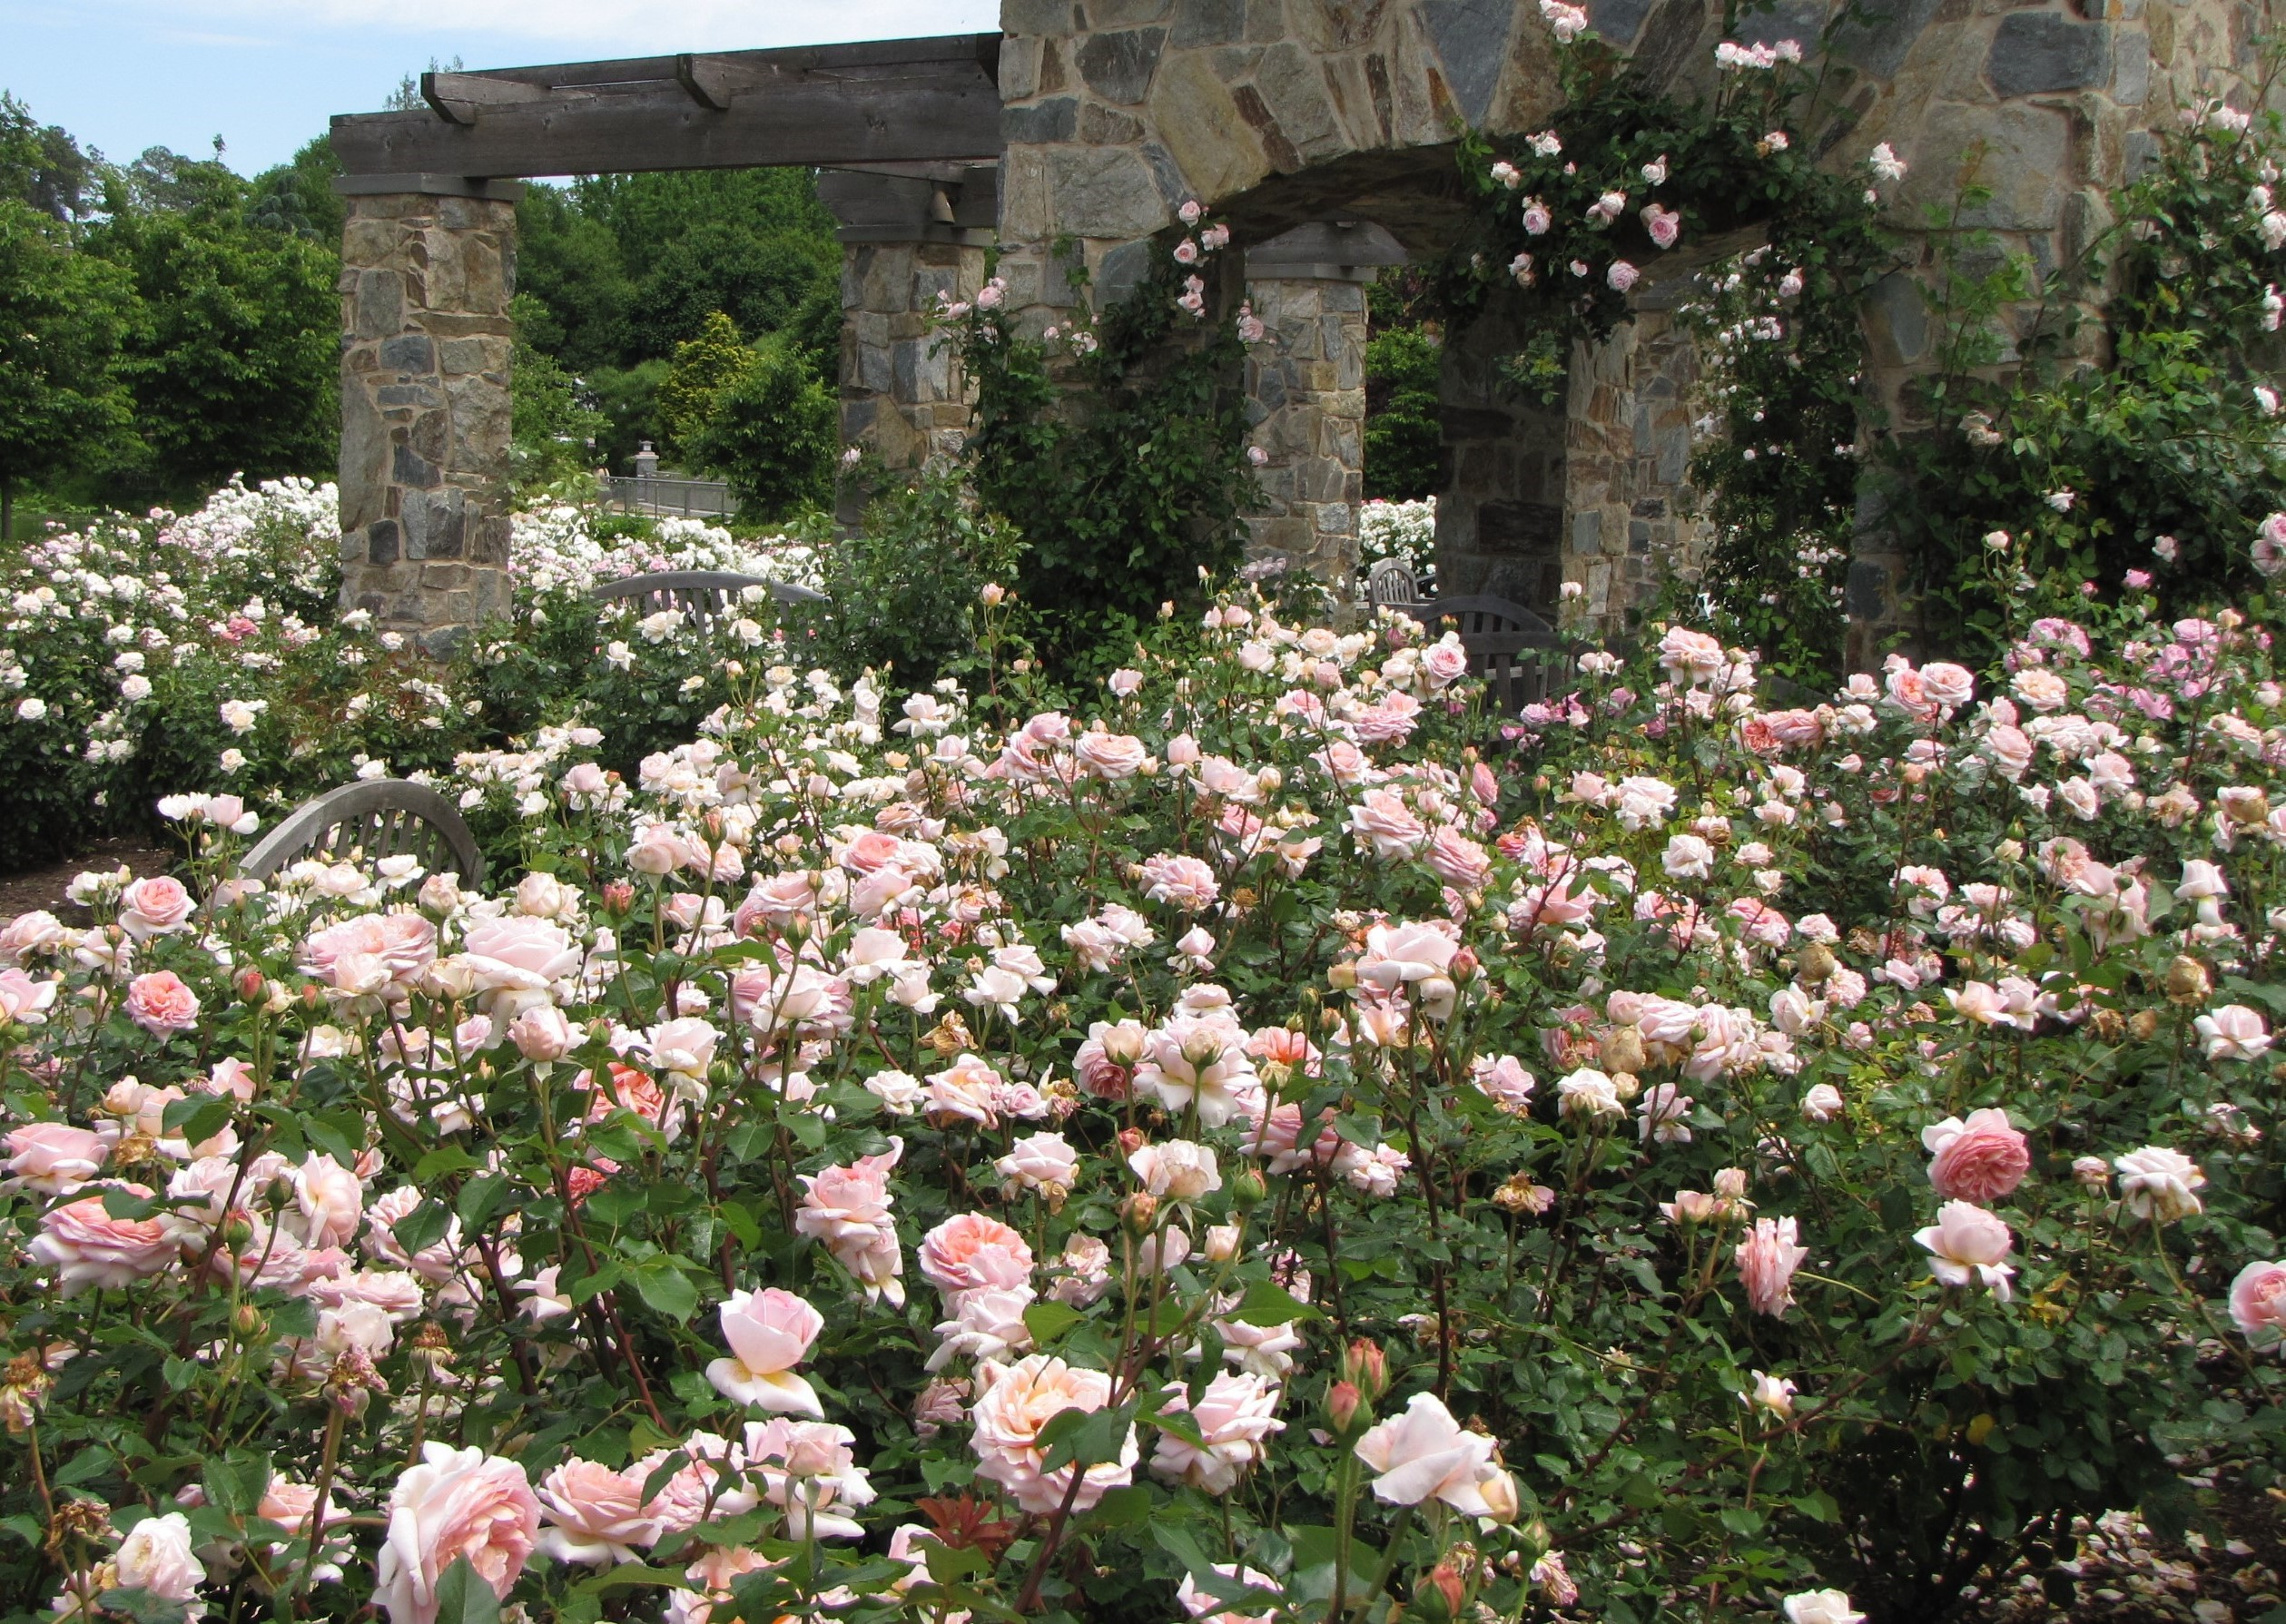 Class 11-Lewis Ginter Rose Garden & Pergola - Pam Powers